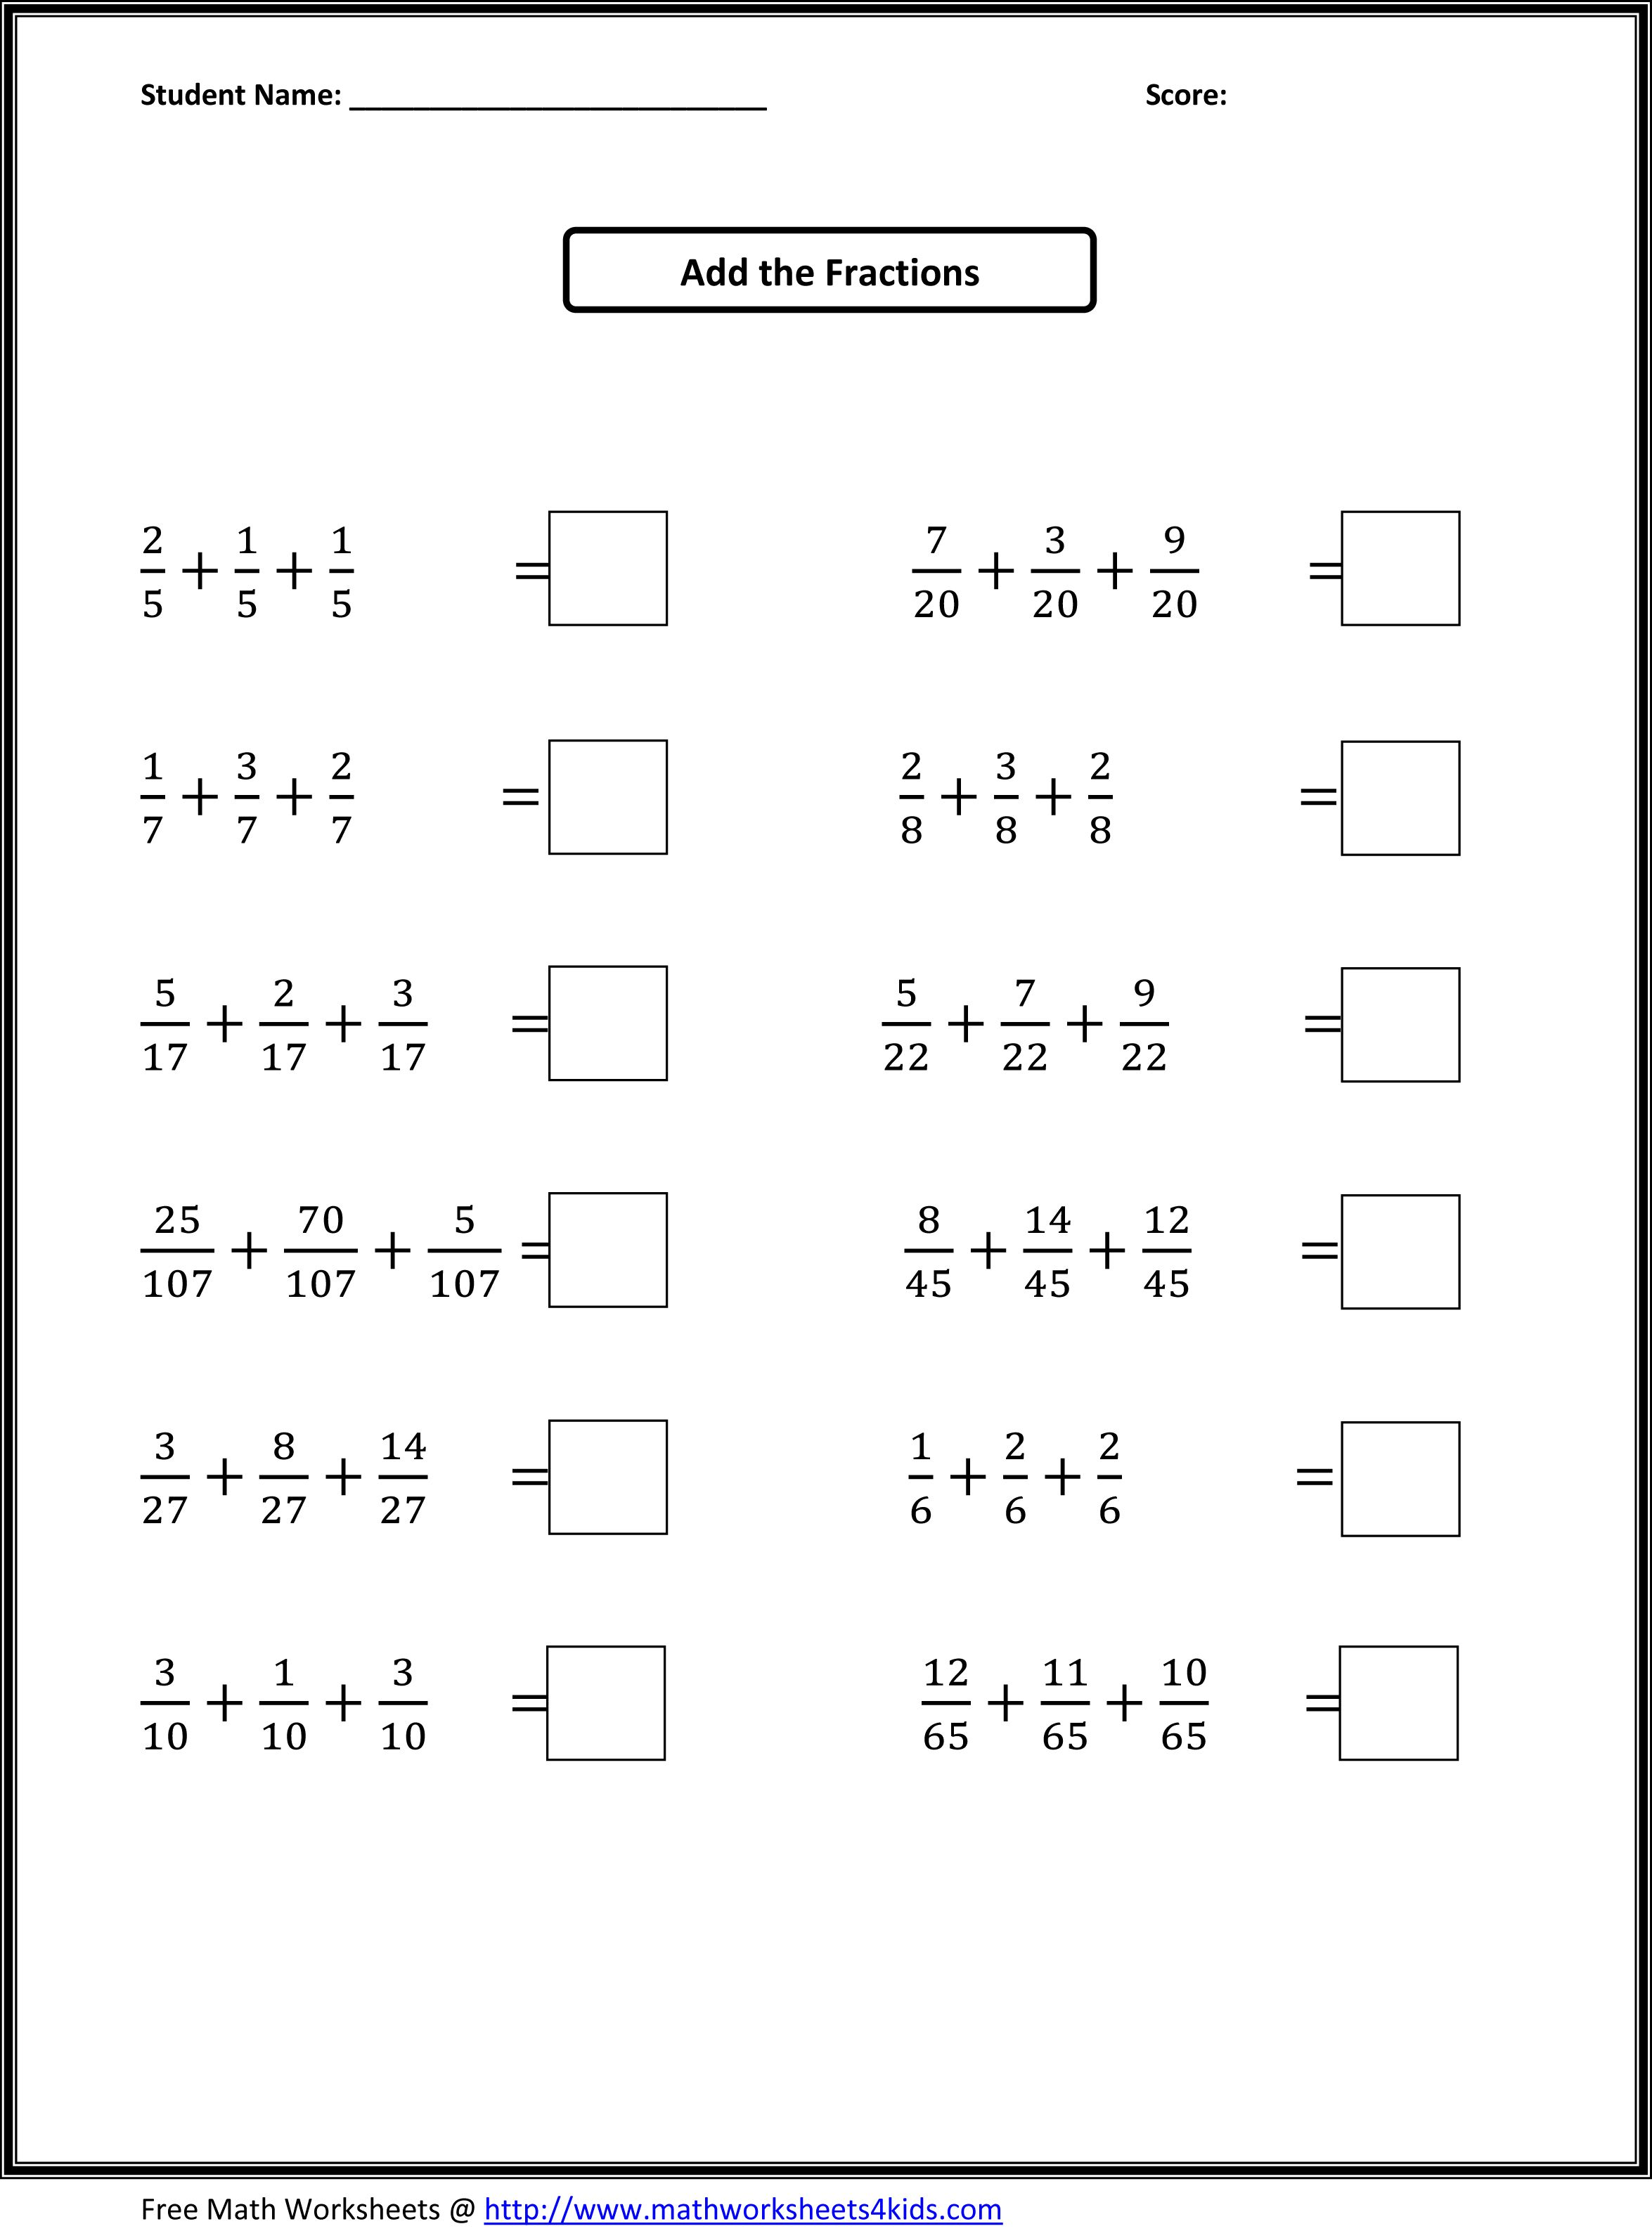 Worksheets Four Grade Math Worksheets worksheets for all early ed grades topics of math pinterest and adding fractions